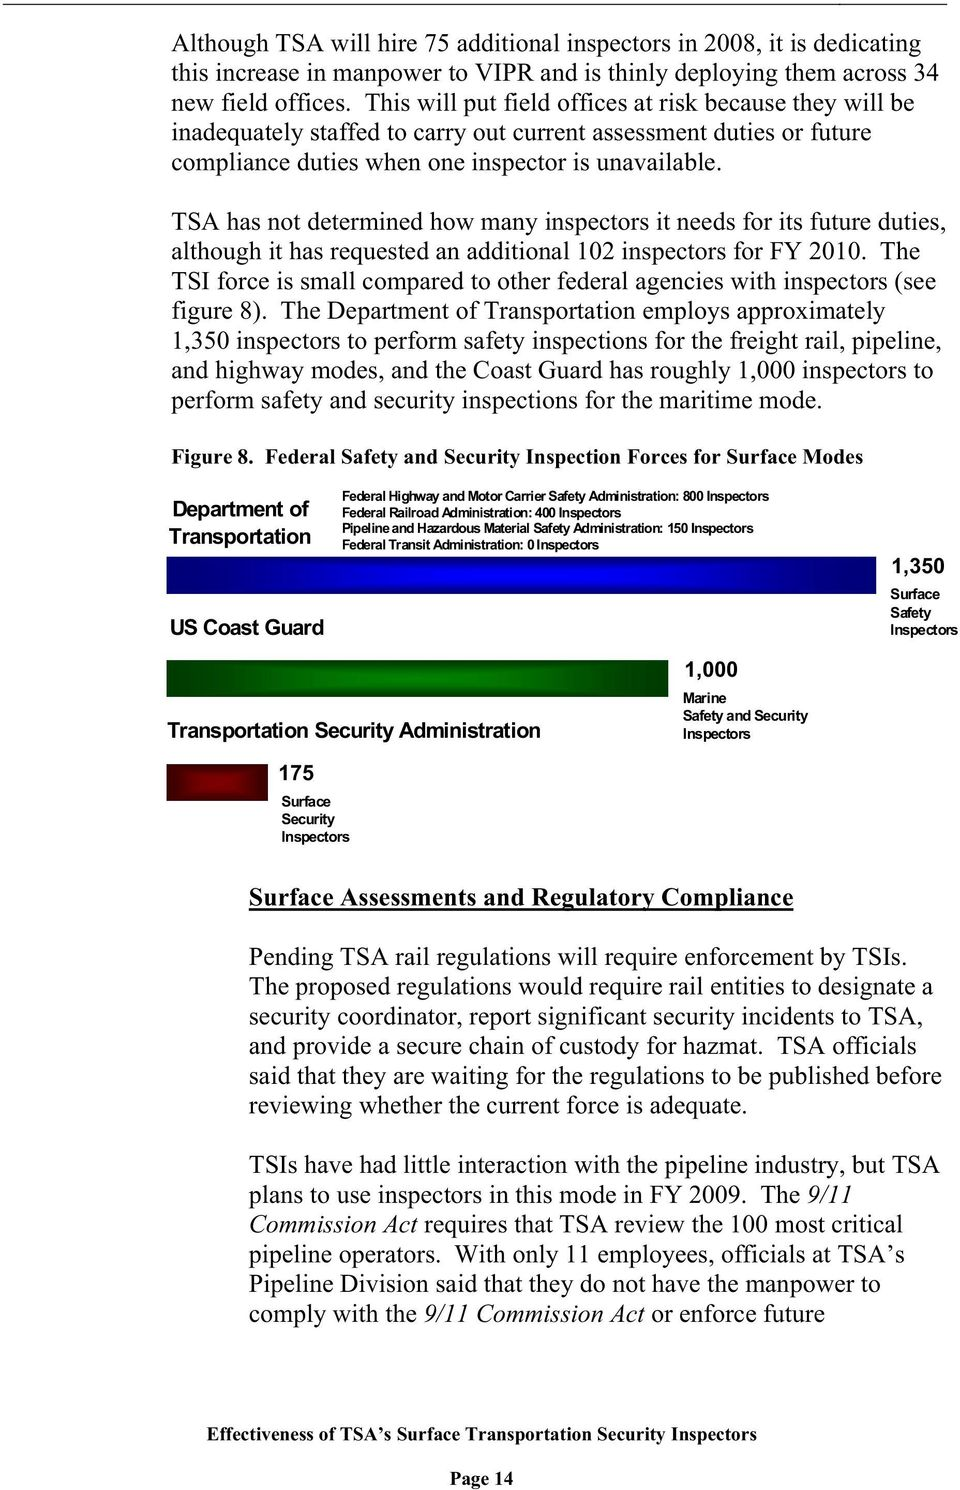 TSA has not determined how many inspectors it needs for its future duties, although it has requested an additional 102 inspectors for FY 2010.